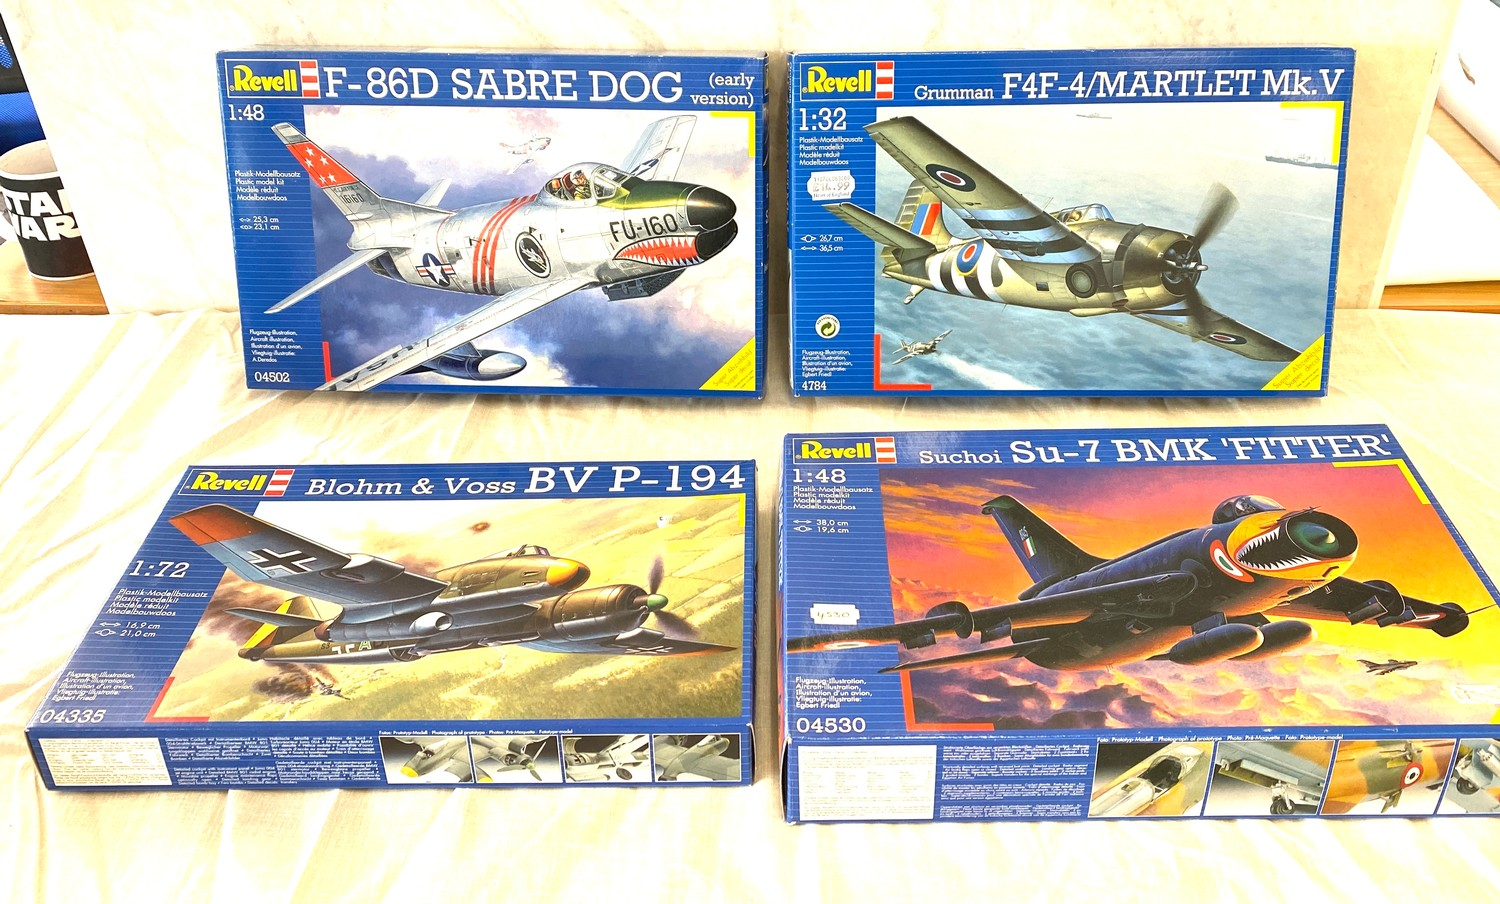 Selection of aircraft models in original boxes, Revell F-86D Sabre Dog, Blohm & Voss BV P-194,